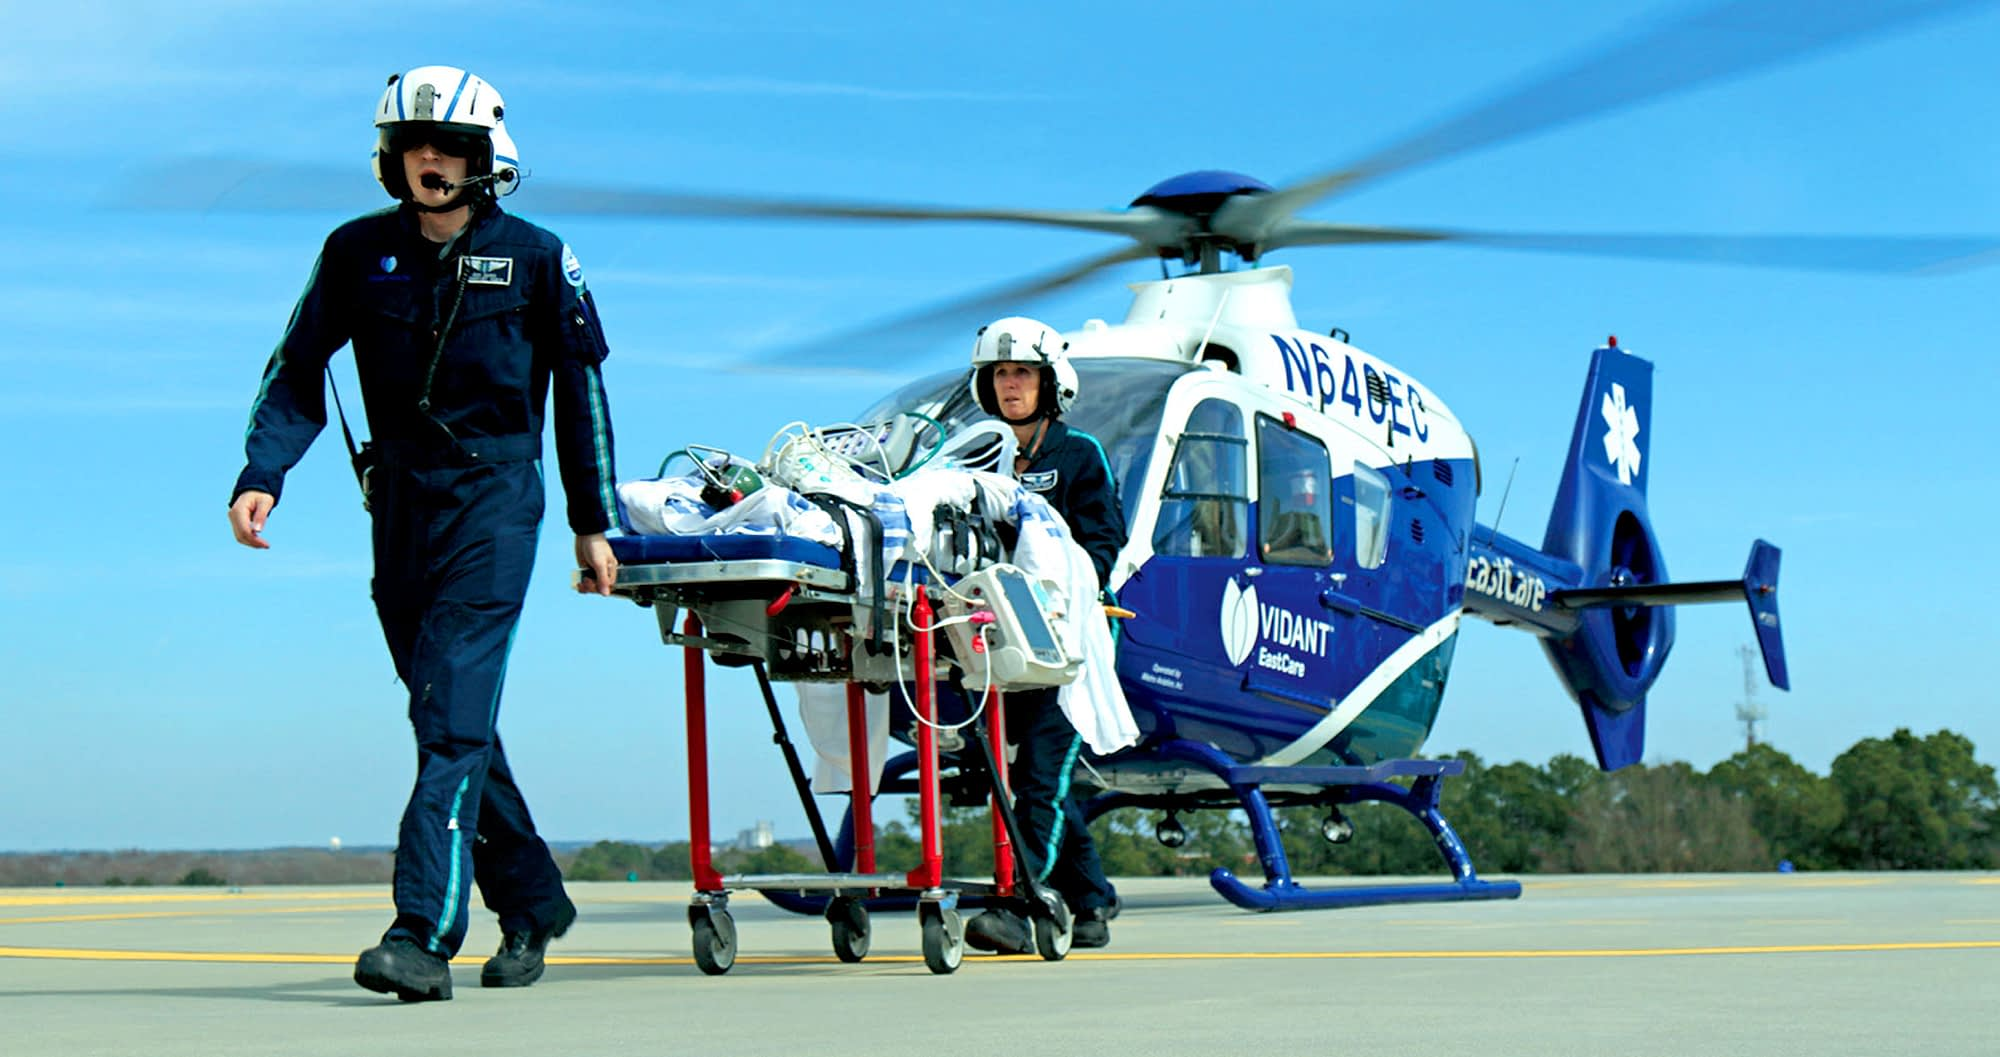 Two emergency response crewmen take a patient off a helicopter and walk towards hospital.